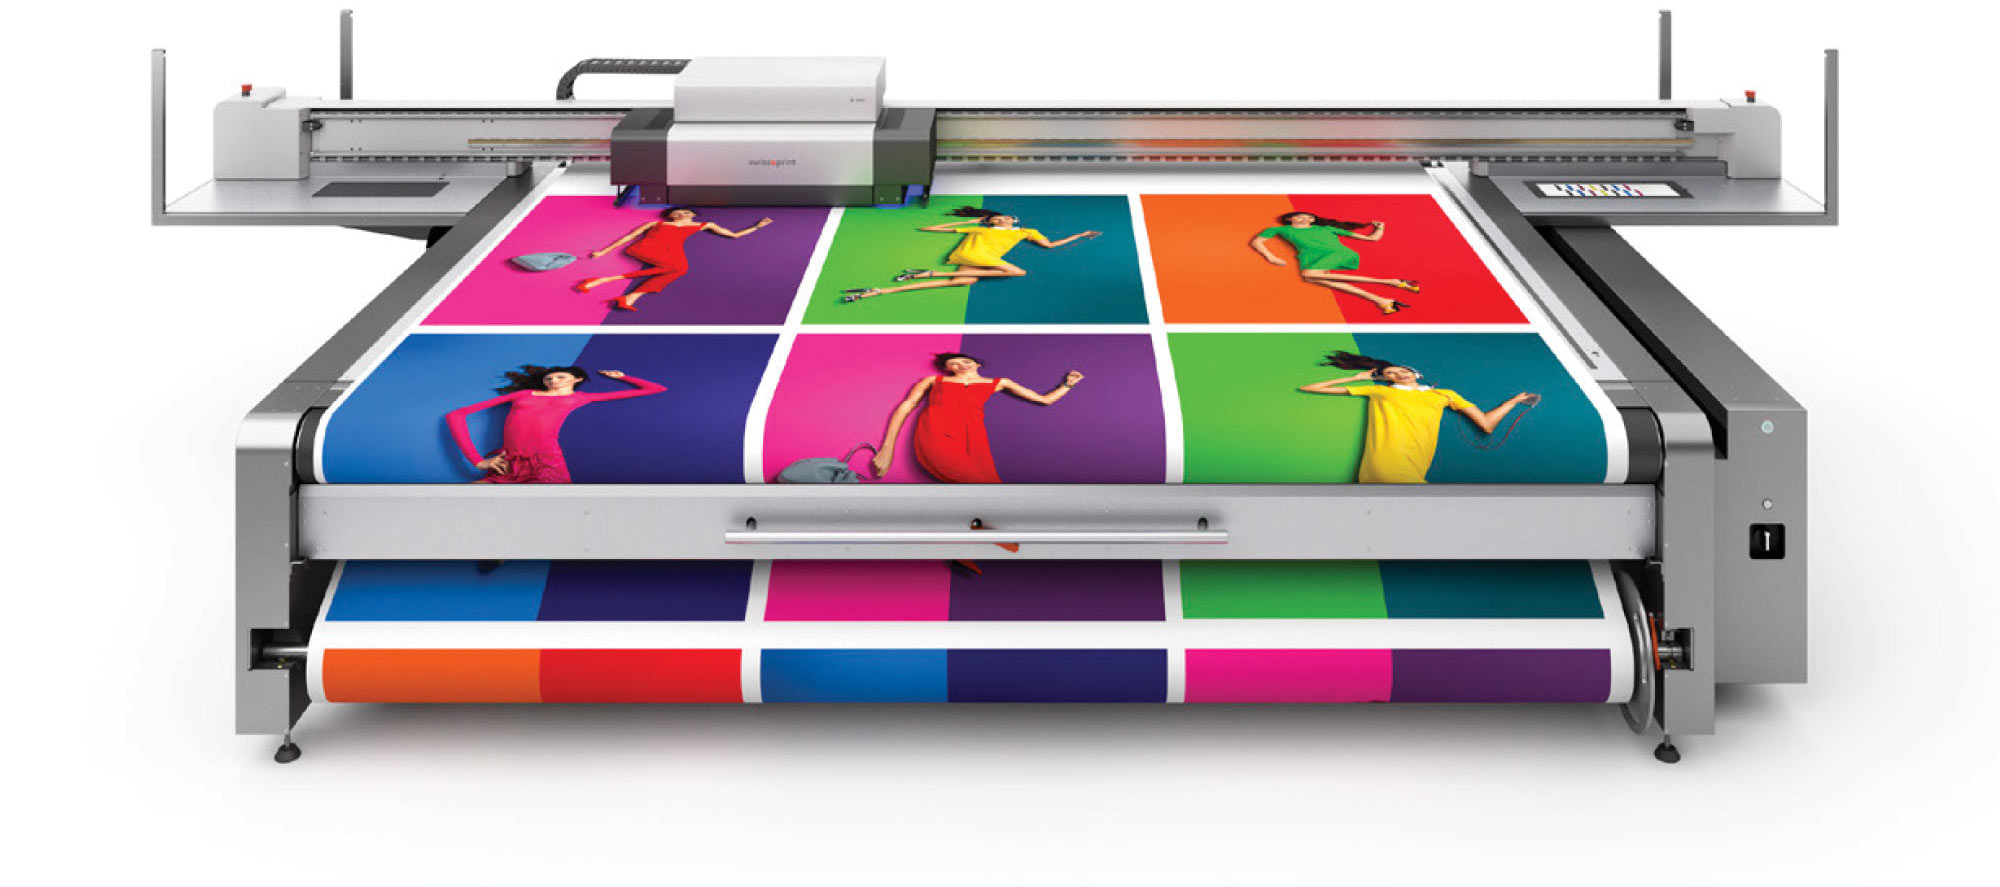 Printing Press Printing Vibrant Images